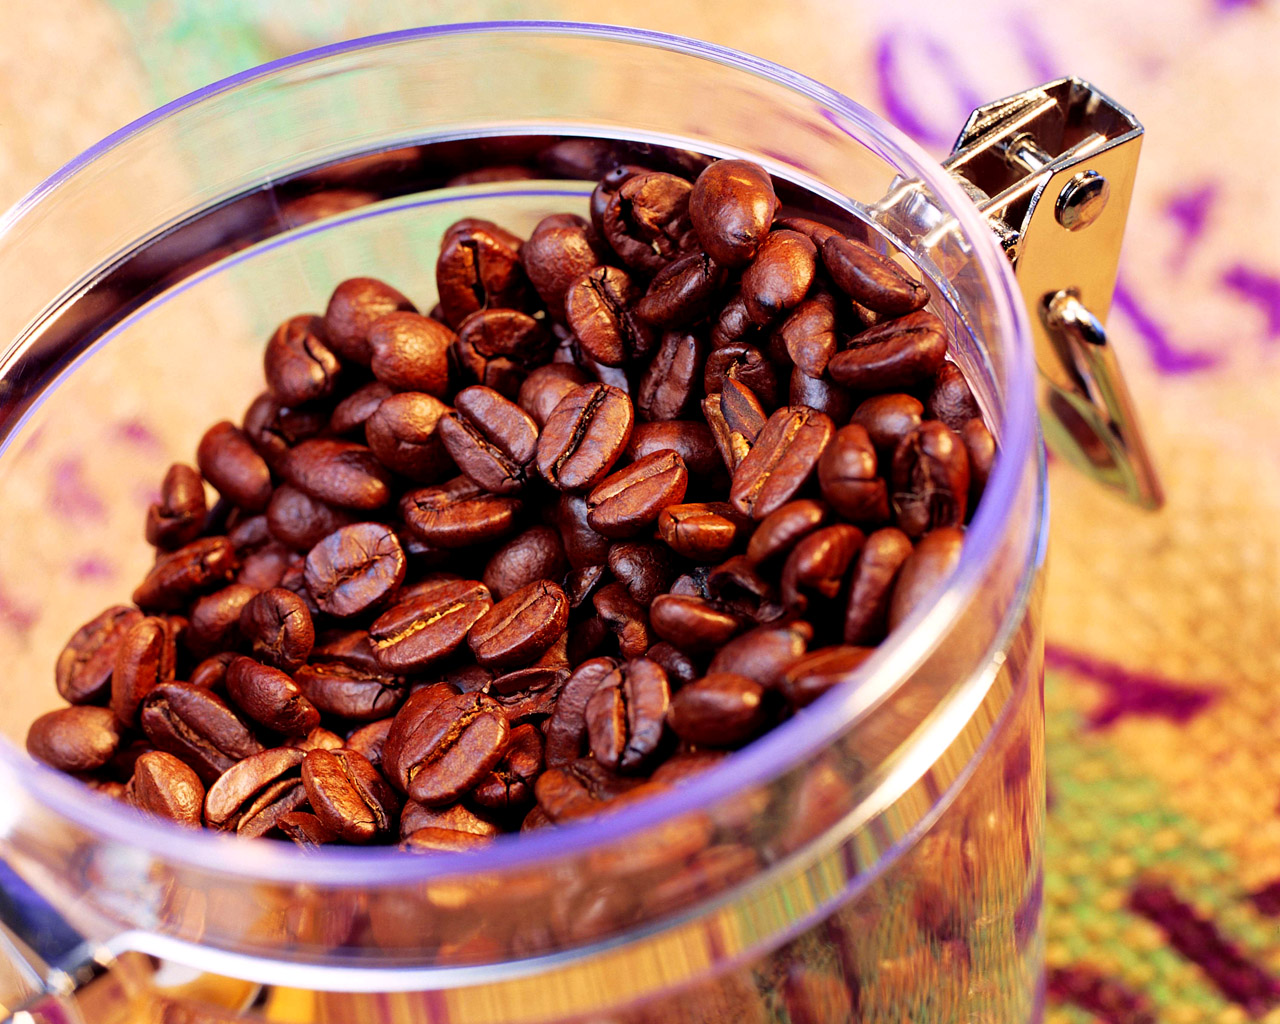 Coffee wallpaper high definition 6233